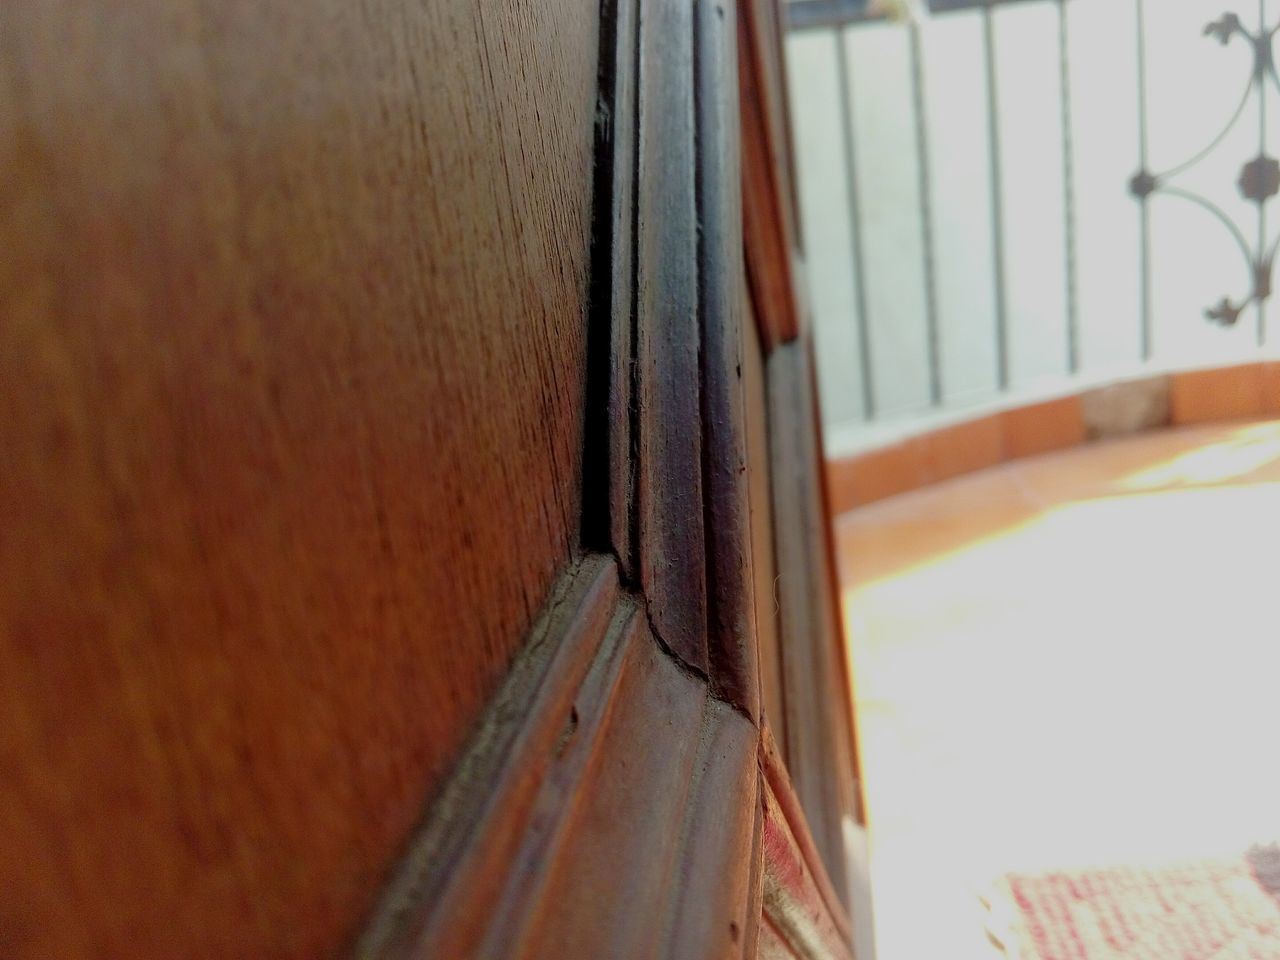 book, education, indoors, close-up, selective focus, no people, day